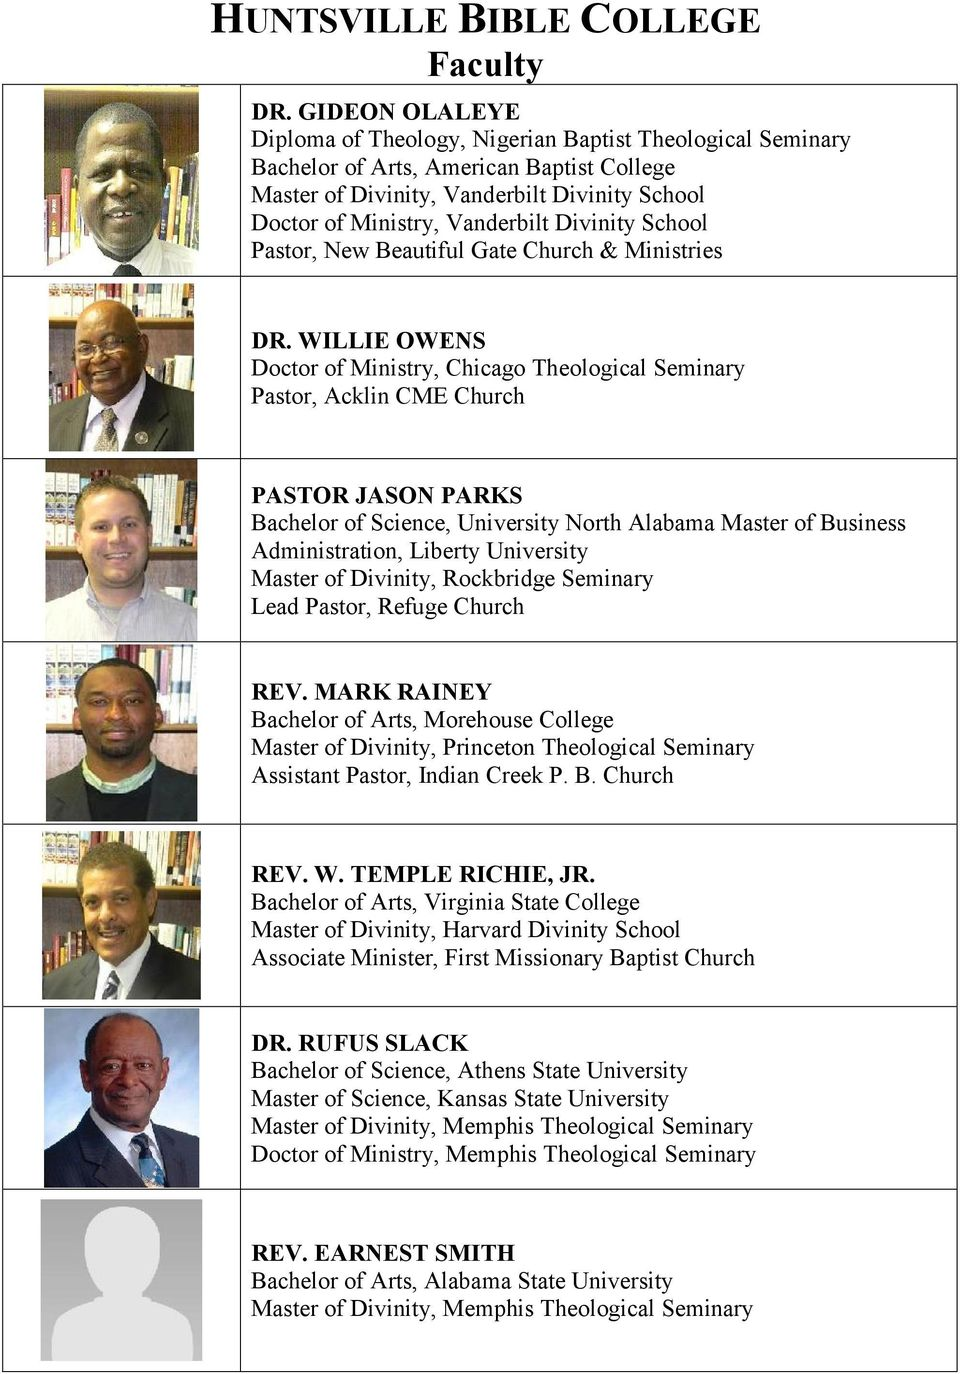 WILLIE OWENS Doctor of Ministry, Chicago Theological Seminary Pastor, Acklin CME Church PASTOR JASON PARKS Bachelor of Science, University North Alabama Master of Business Administration, Liberty